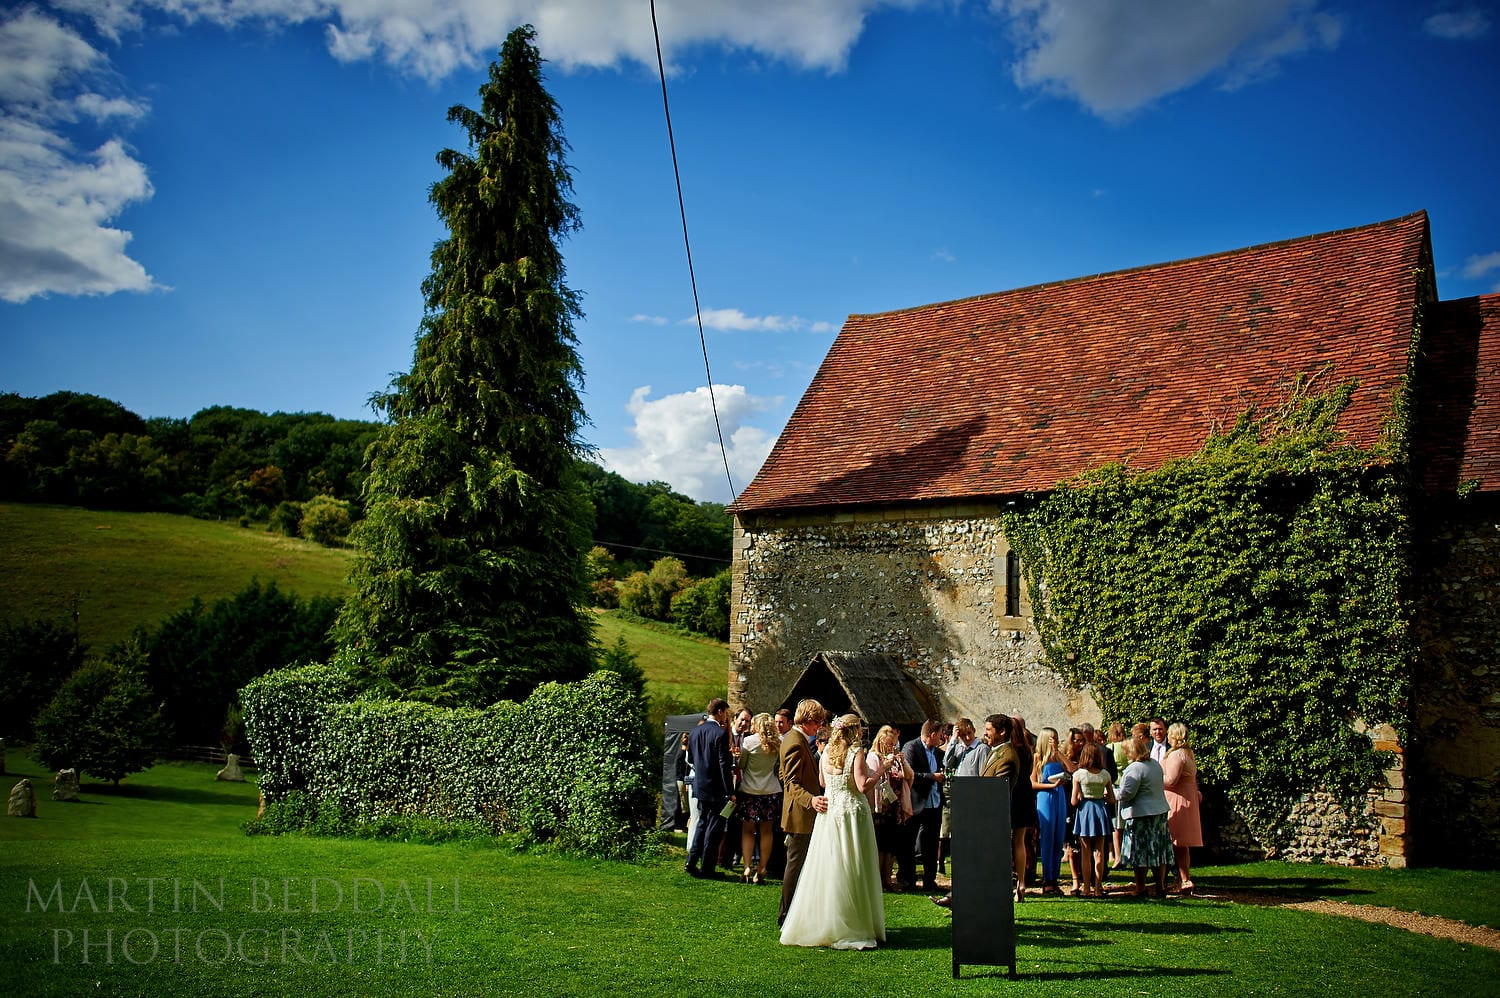 Summer wedding at the Lost Village of Dode